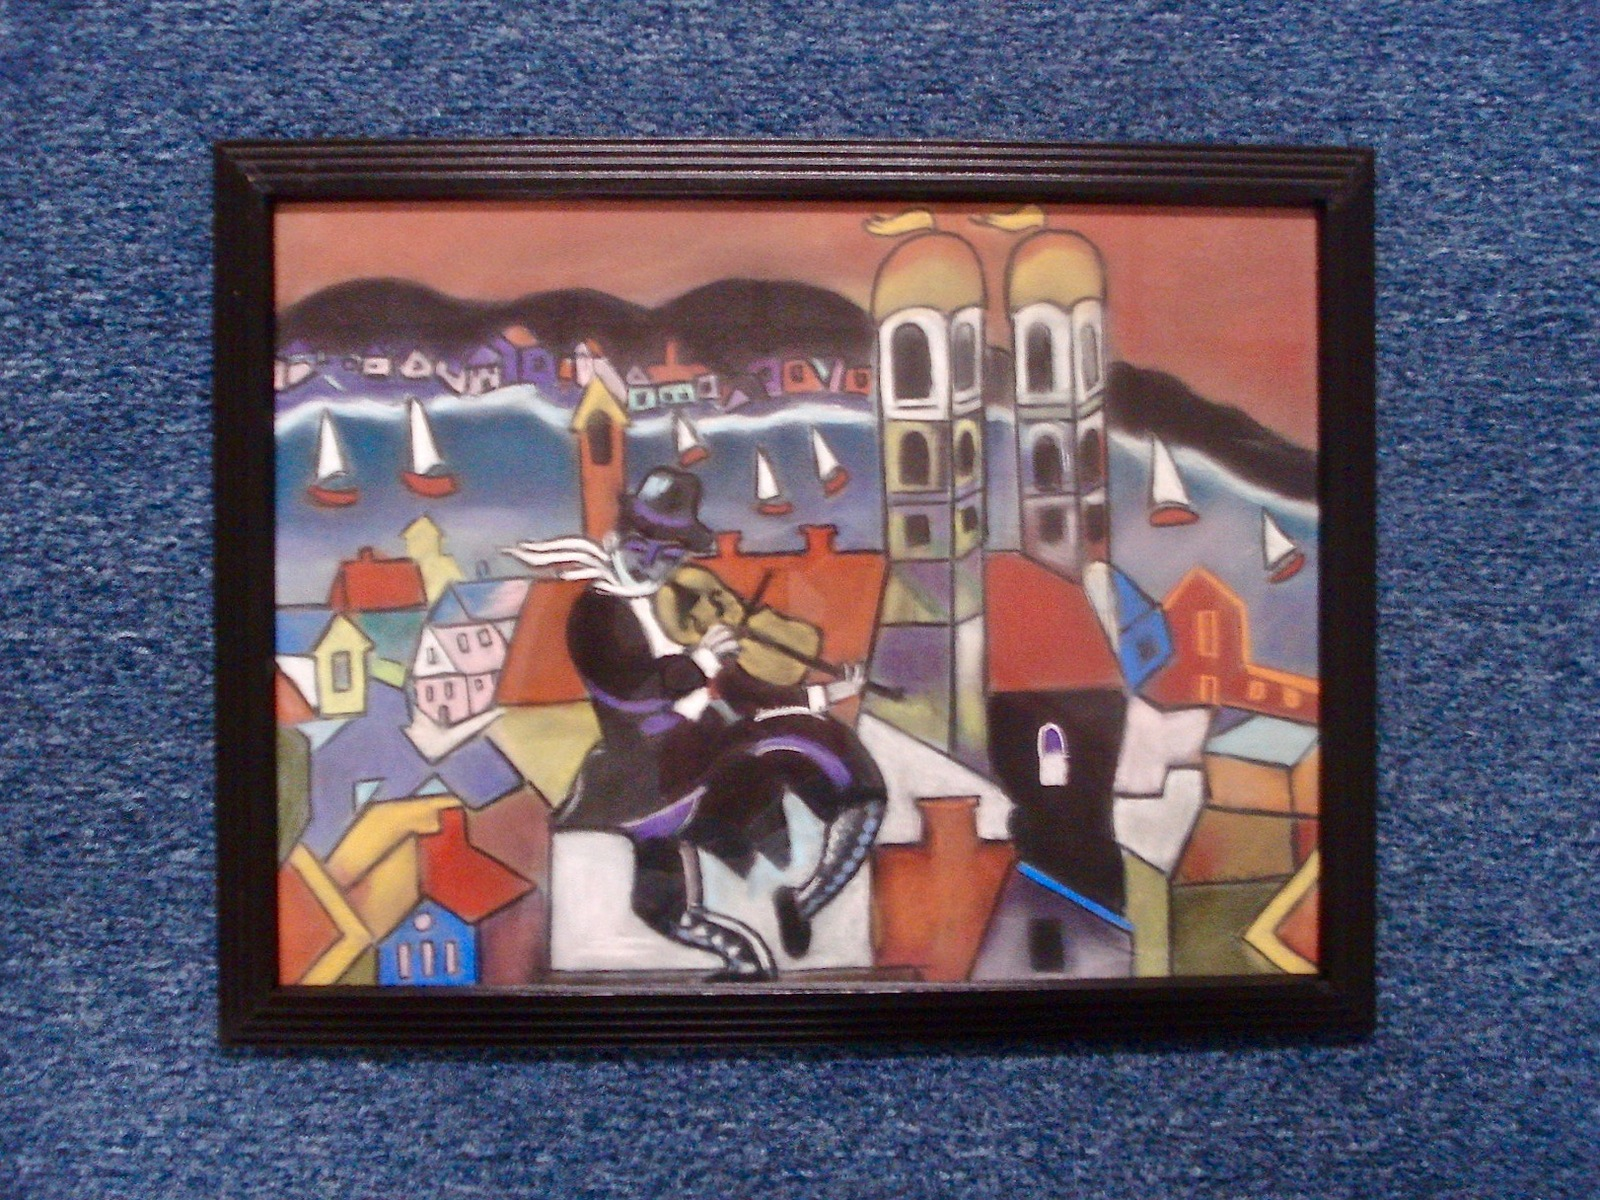 RI Artist R Califano Art Pastel Painting On The Town Dated 2003 Signed 00326